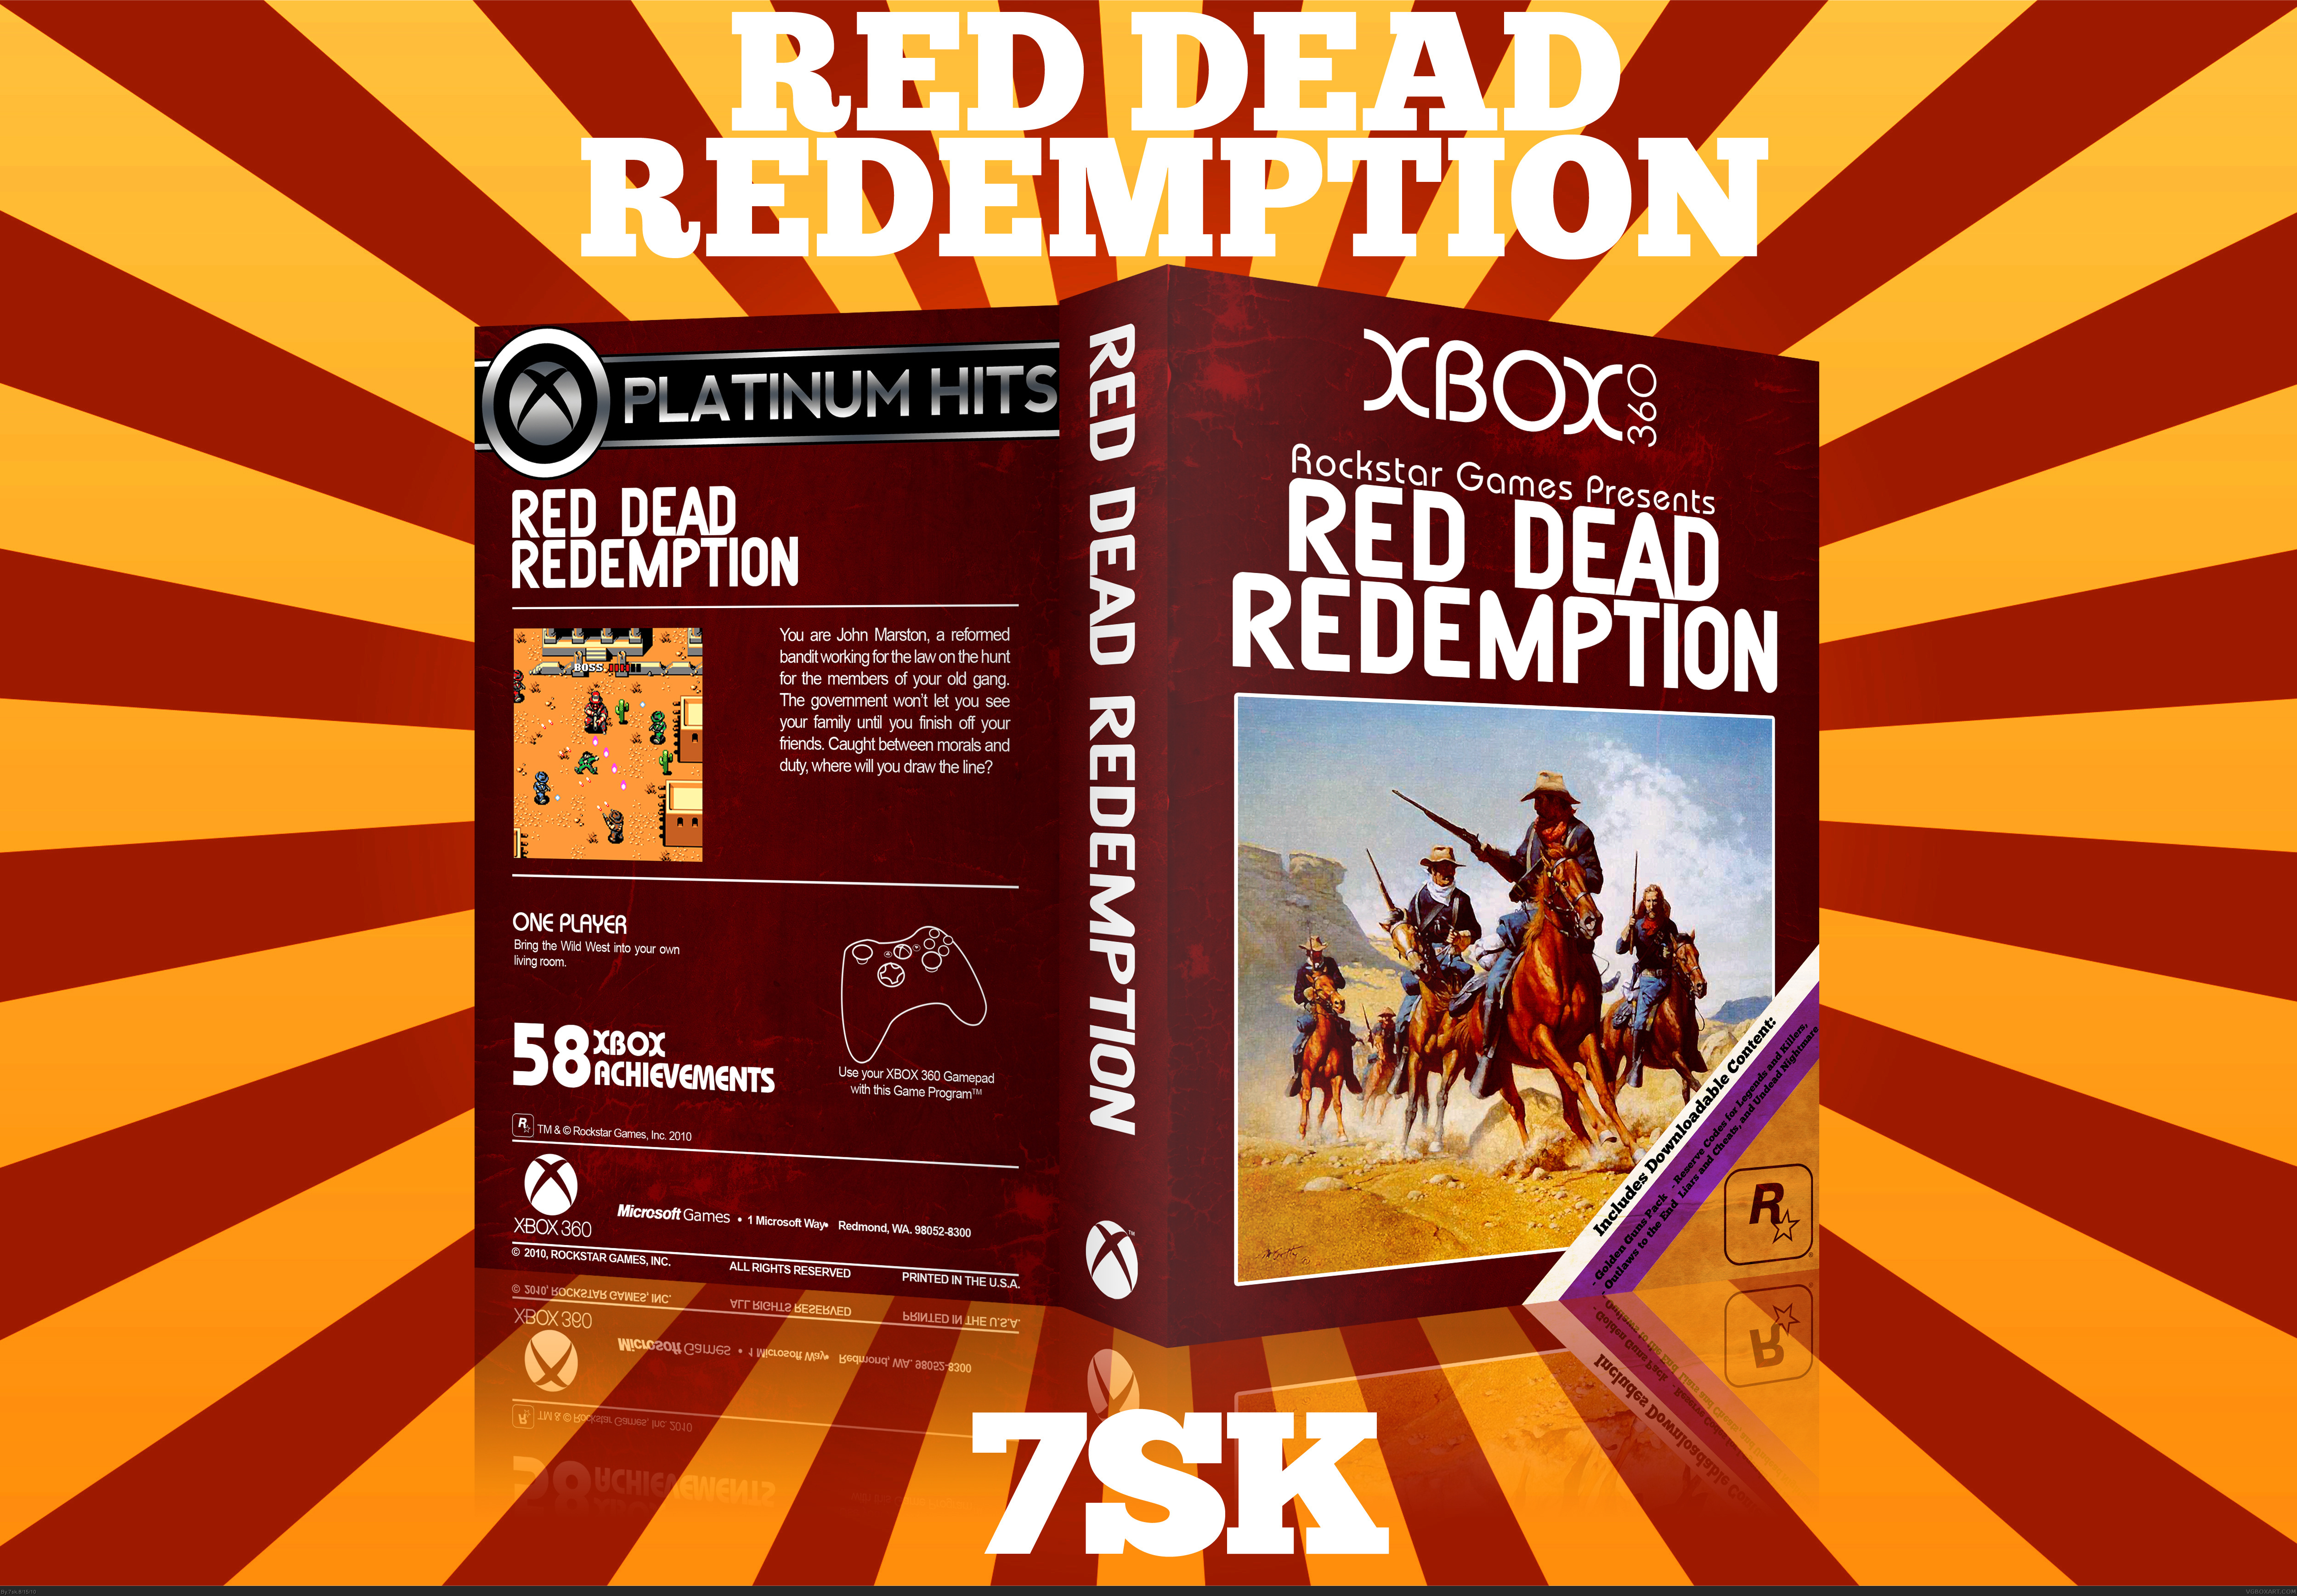 Red Dead Redemption box cover